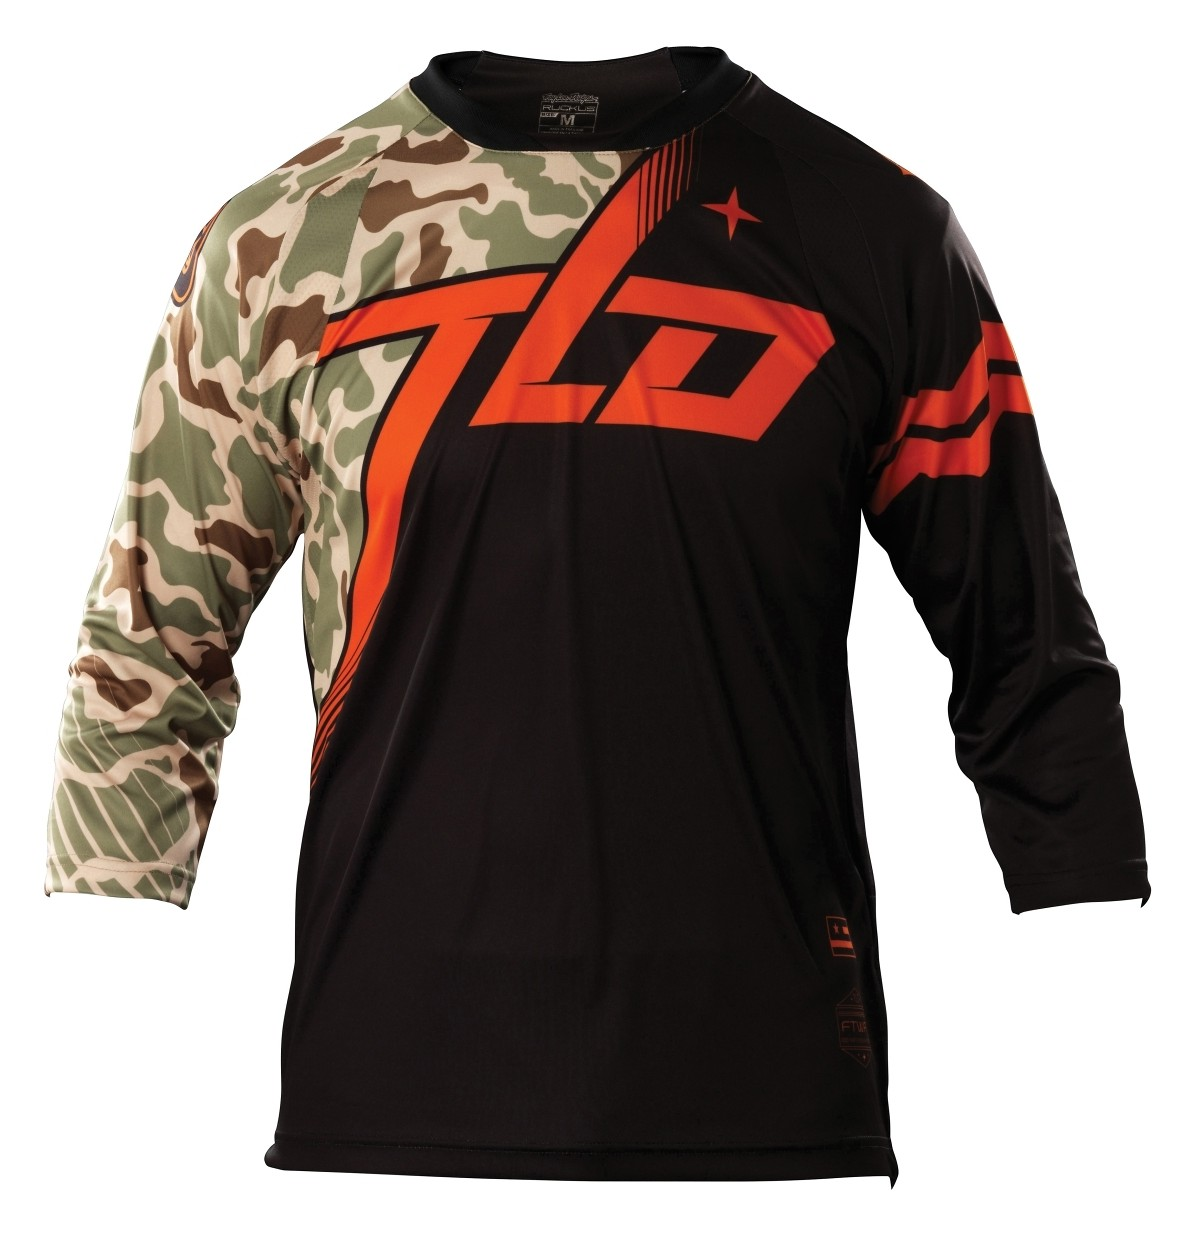 6091ba5c8 Troy Lee Designs 2015 Ruckus Riding Jersey - Reviews